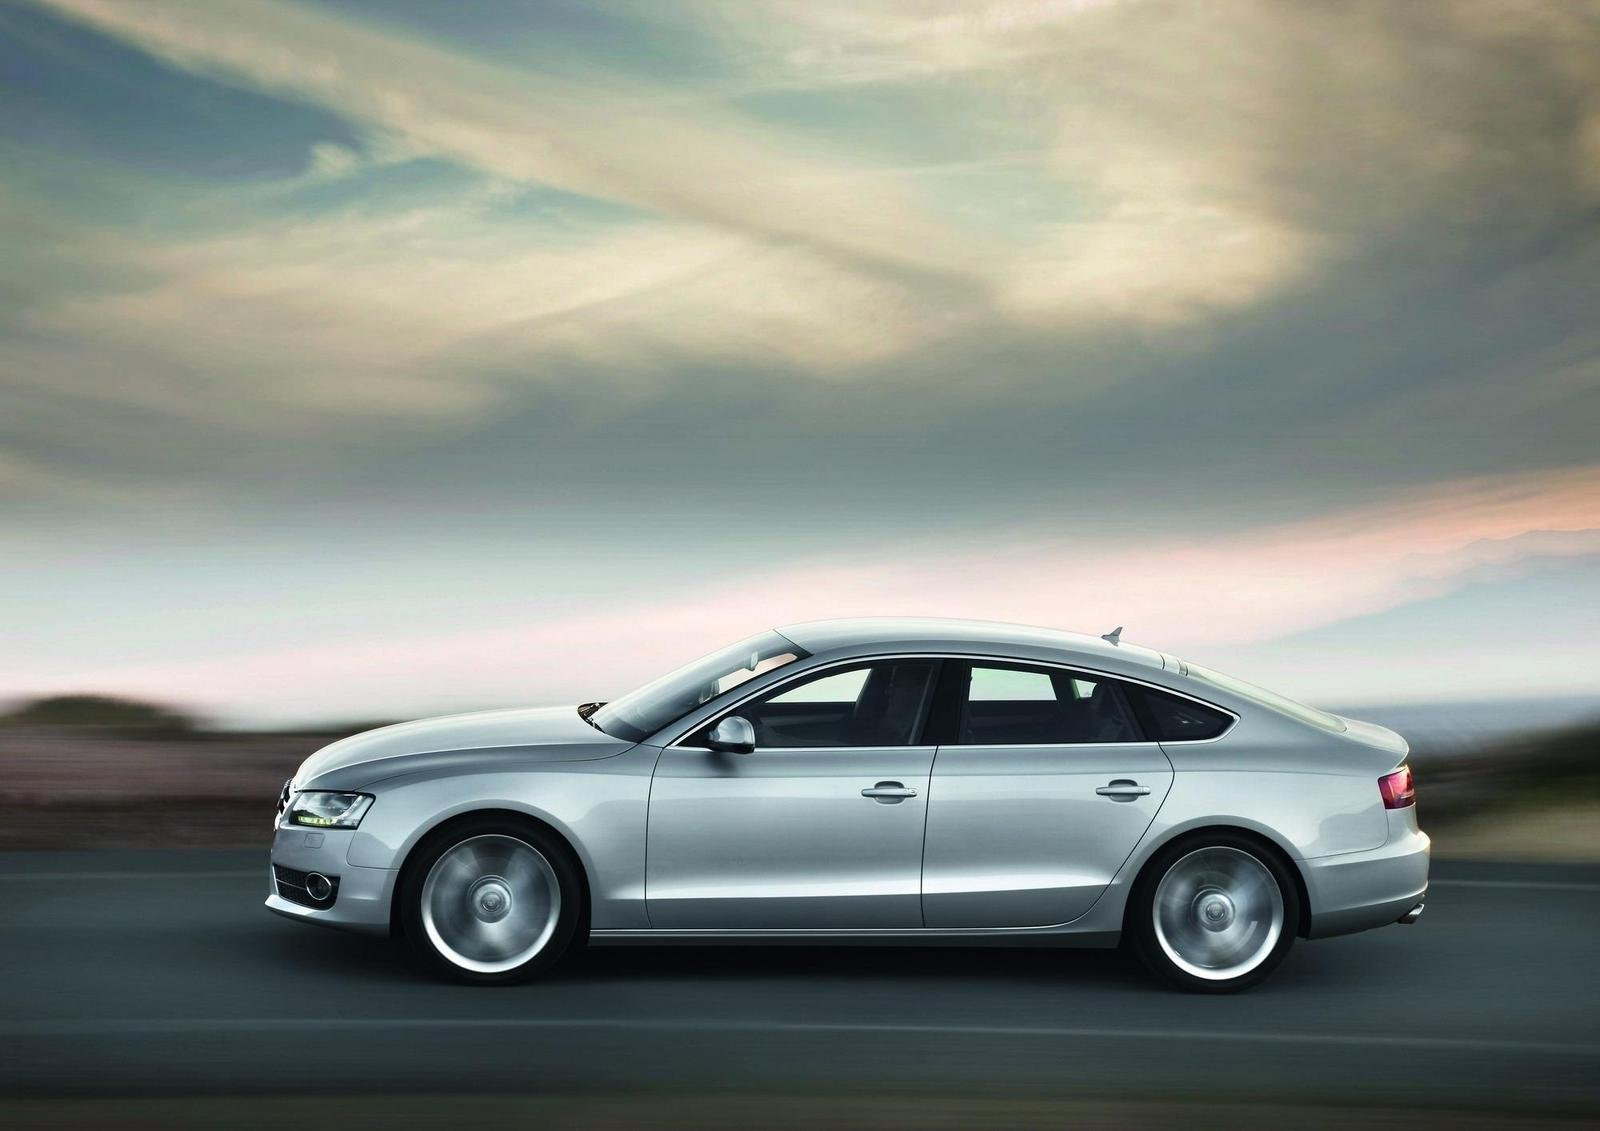 2010 audi a5 sportback picture 311216 car review top speed. Black Bedroom Furniture Sets. Home Design Ideas